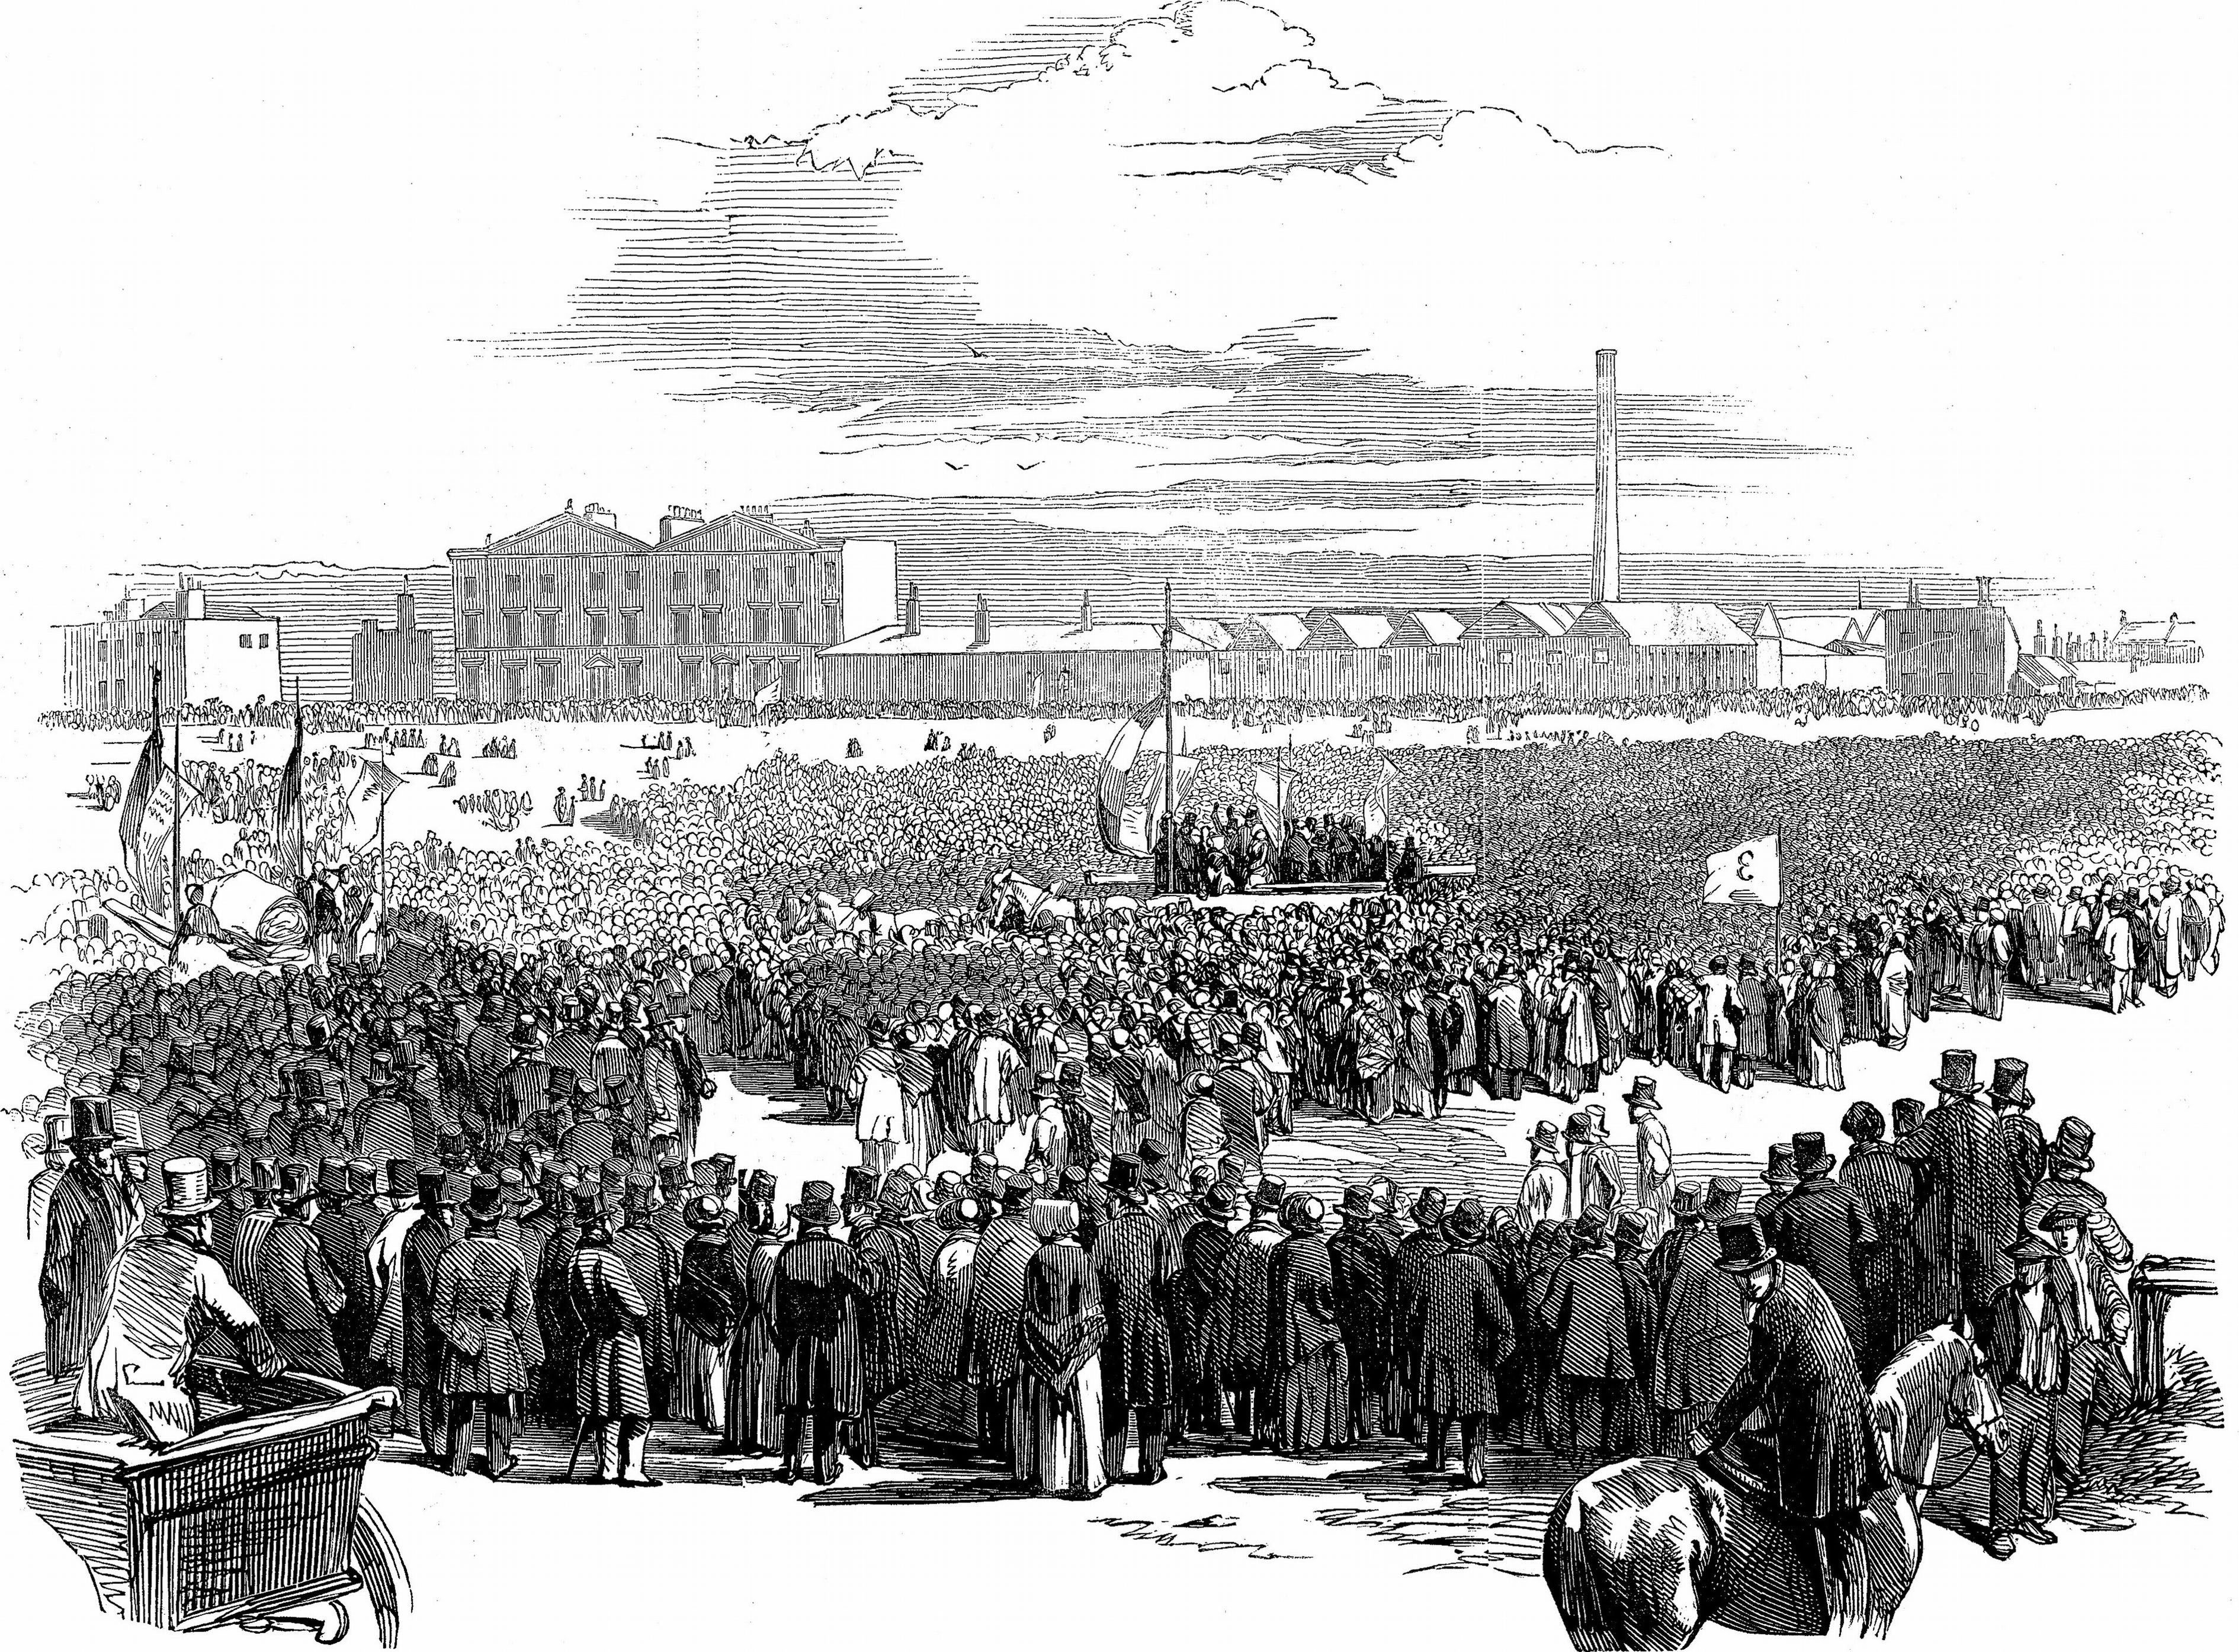 What was the Chartist movement's aims?